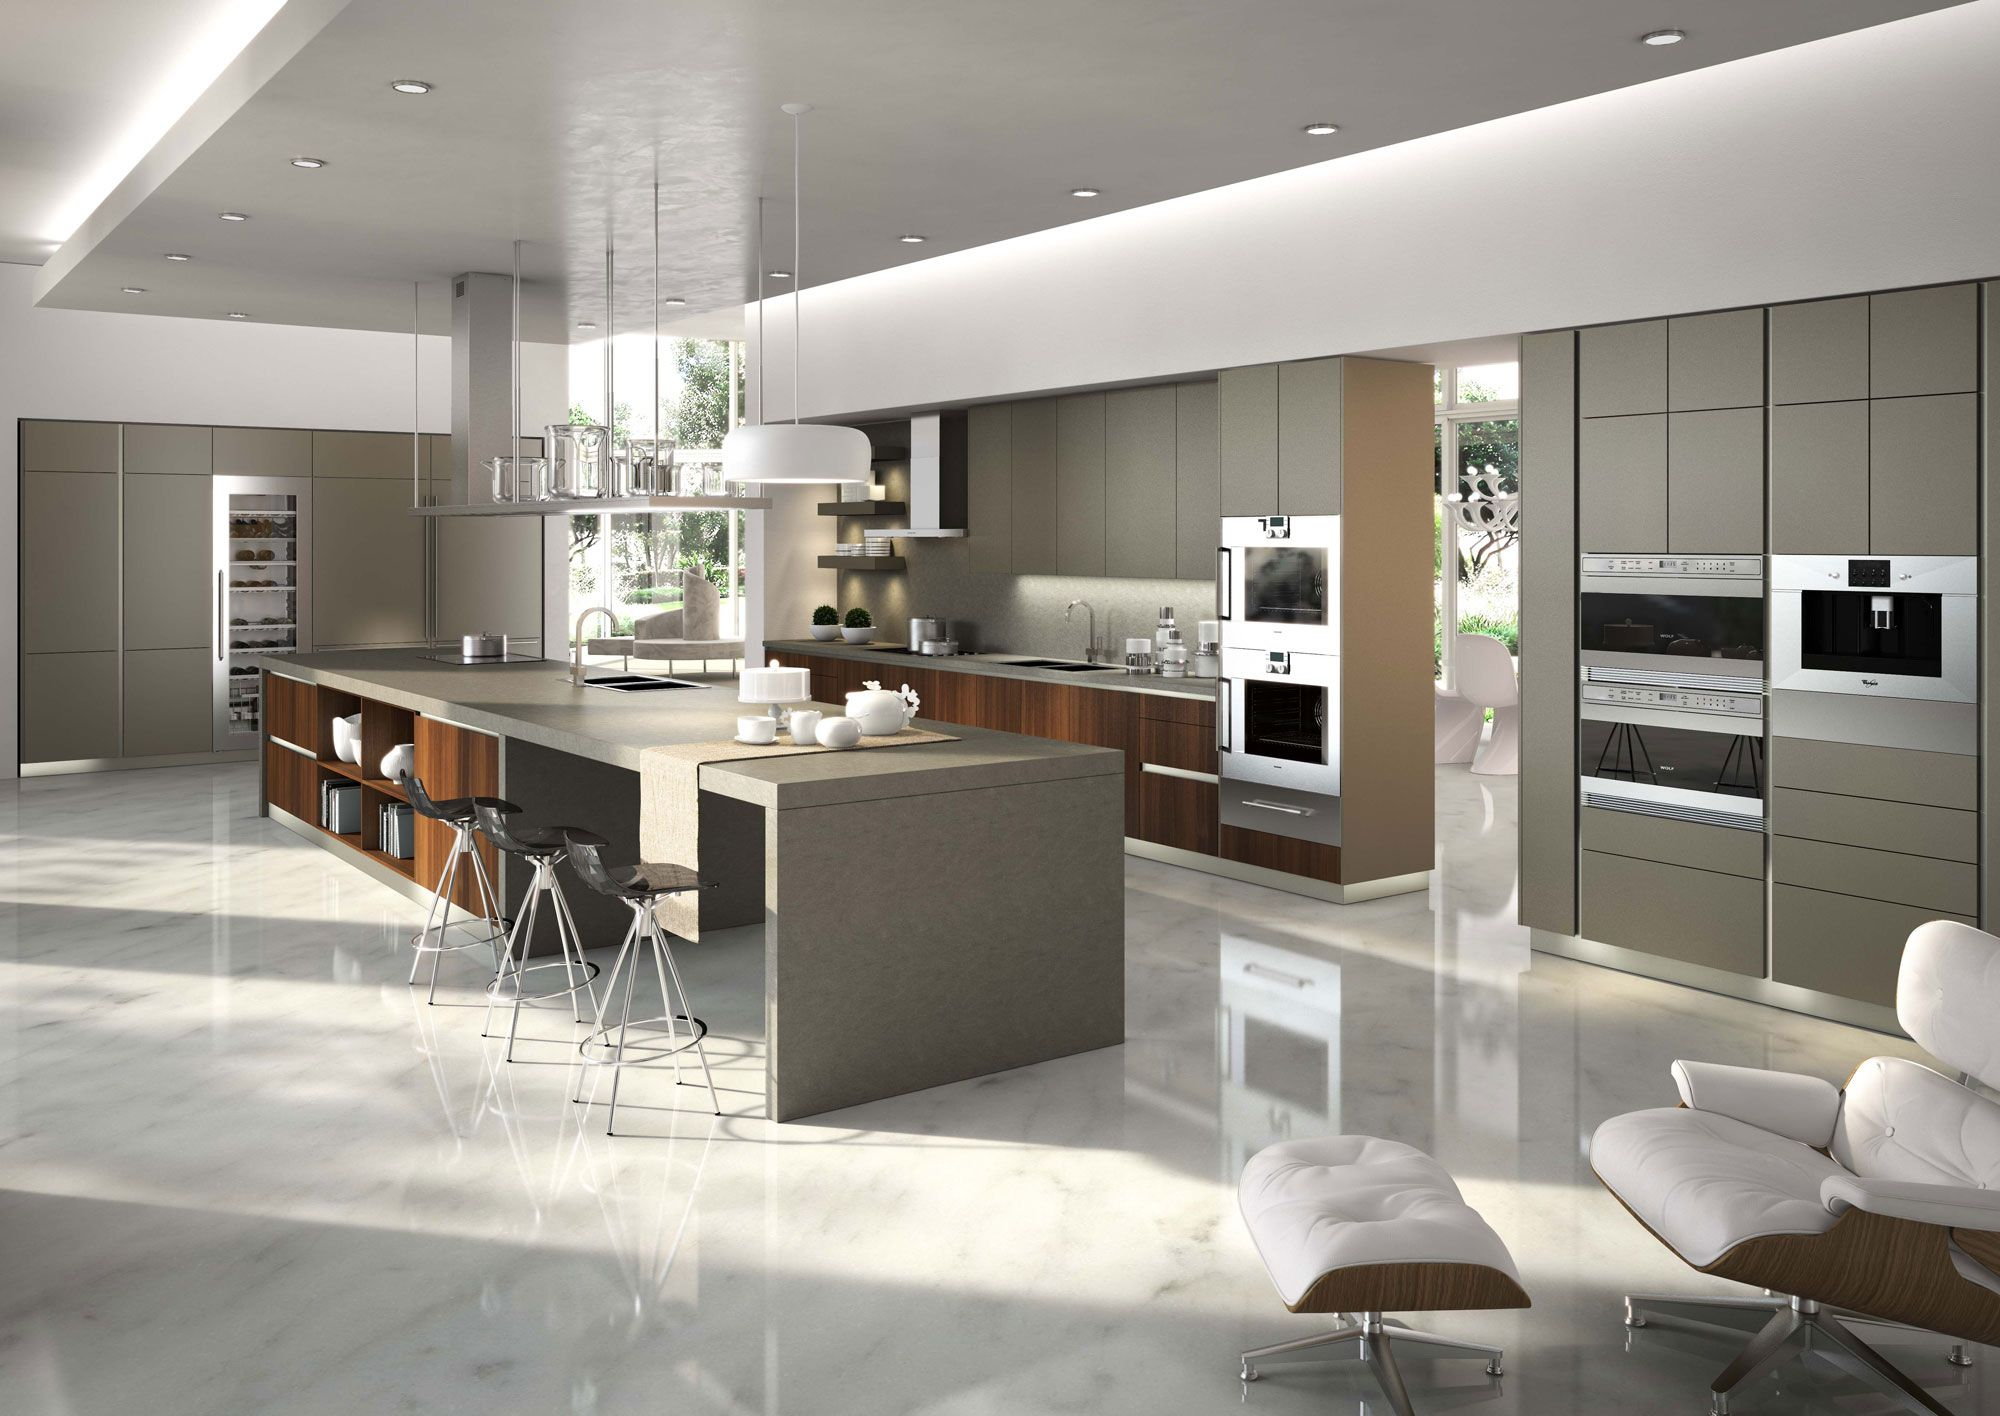 Extreme Makeover Home Edition | Contemporary kitchen ...